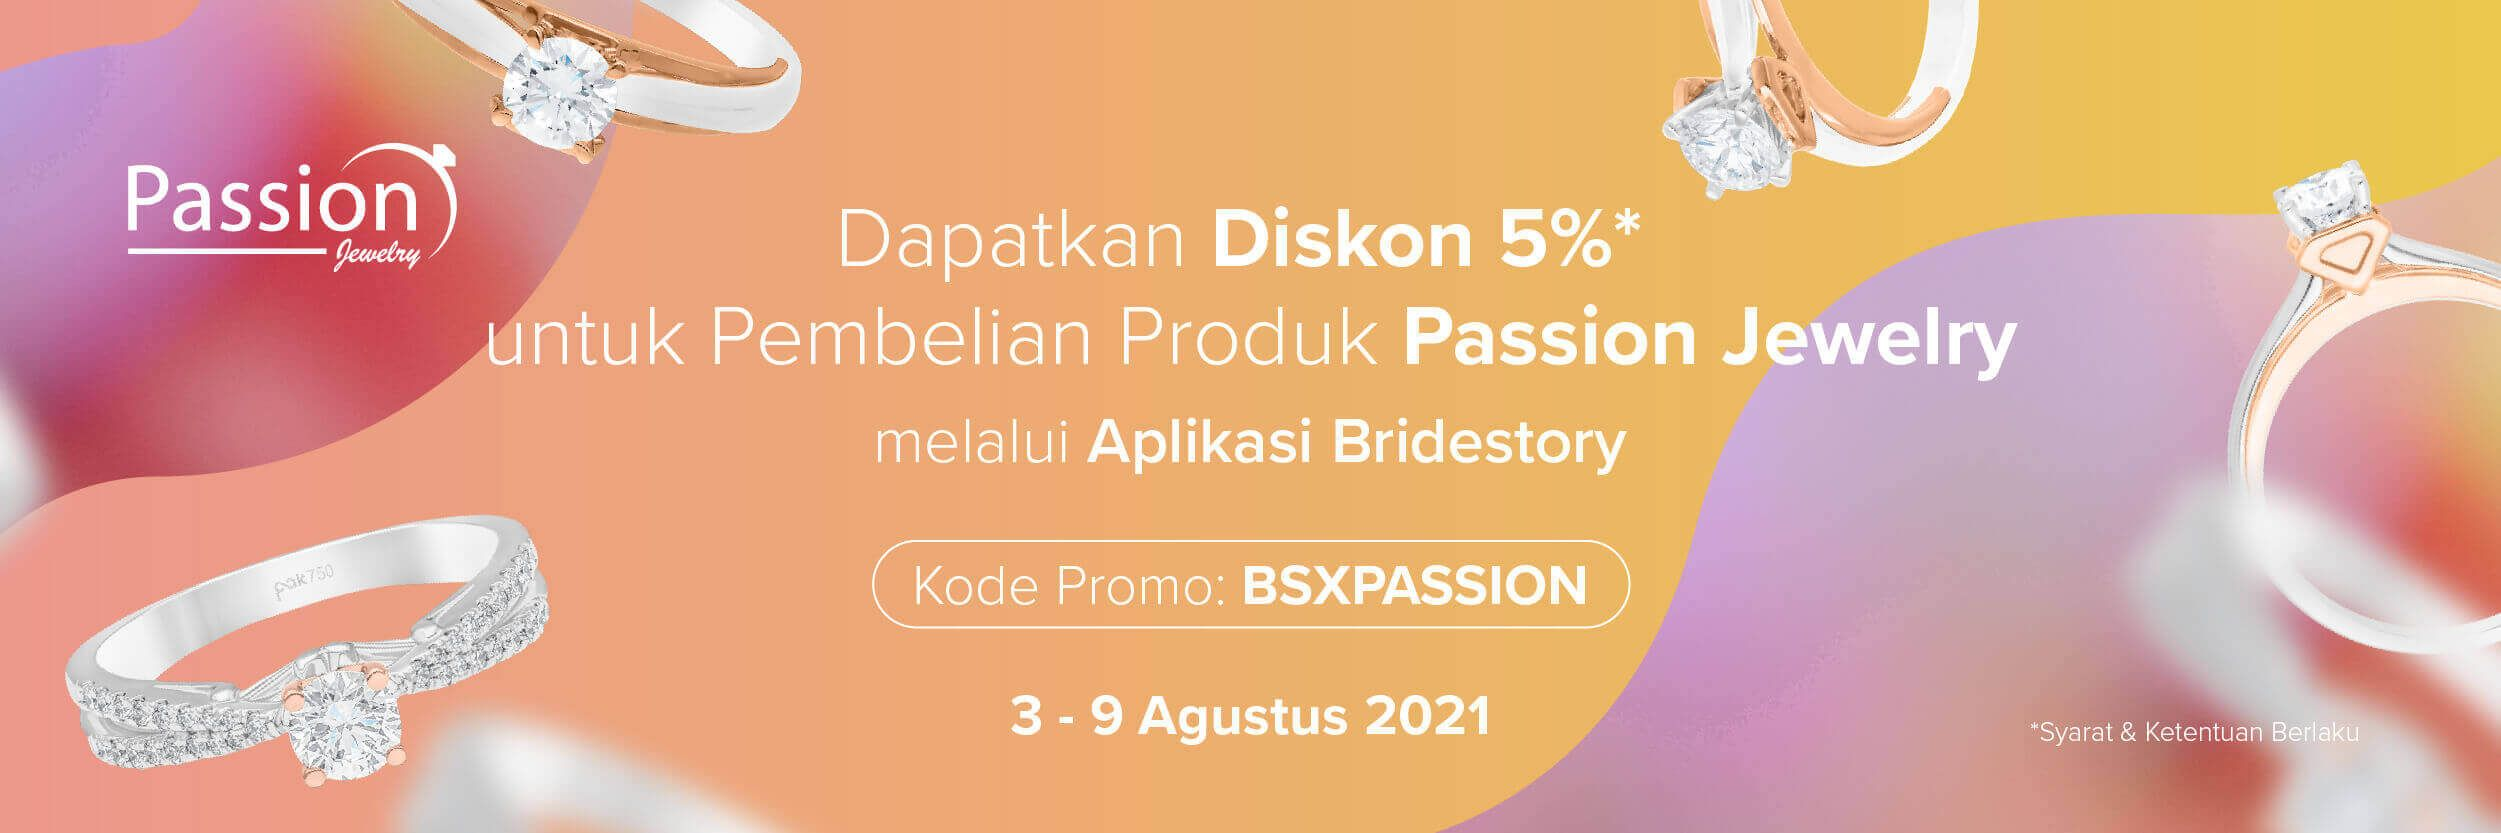 passion-after-event_hpb-hP-WTfLAh.jpg